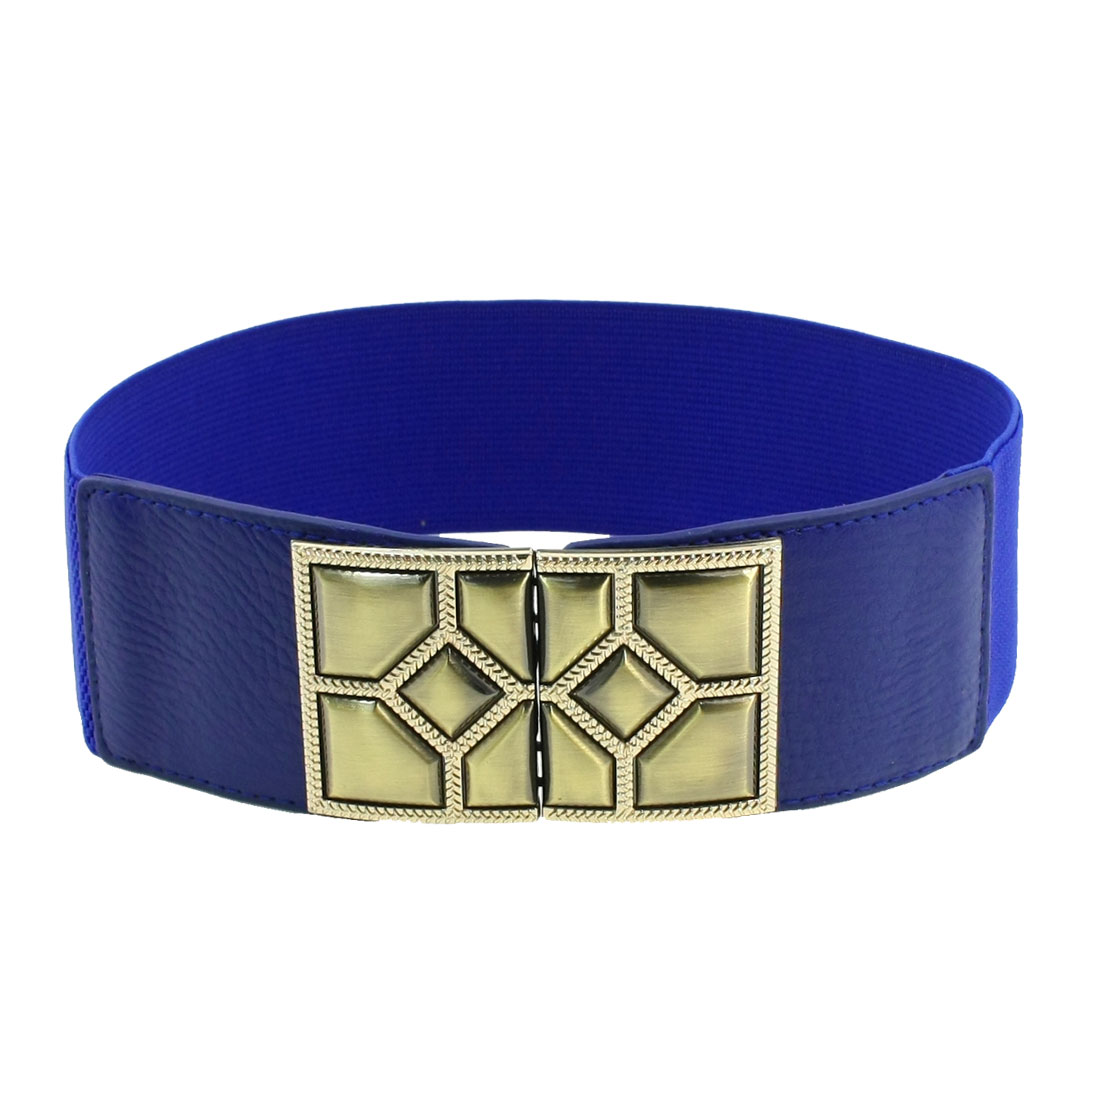 Faceted Interlocking Buckle 6cm Wide Elastic Cinch Belt Blue for Lady